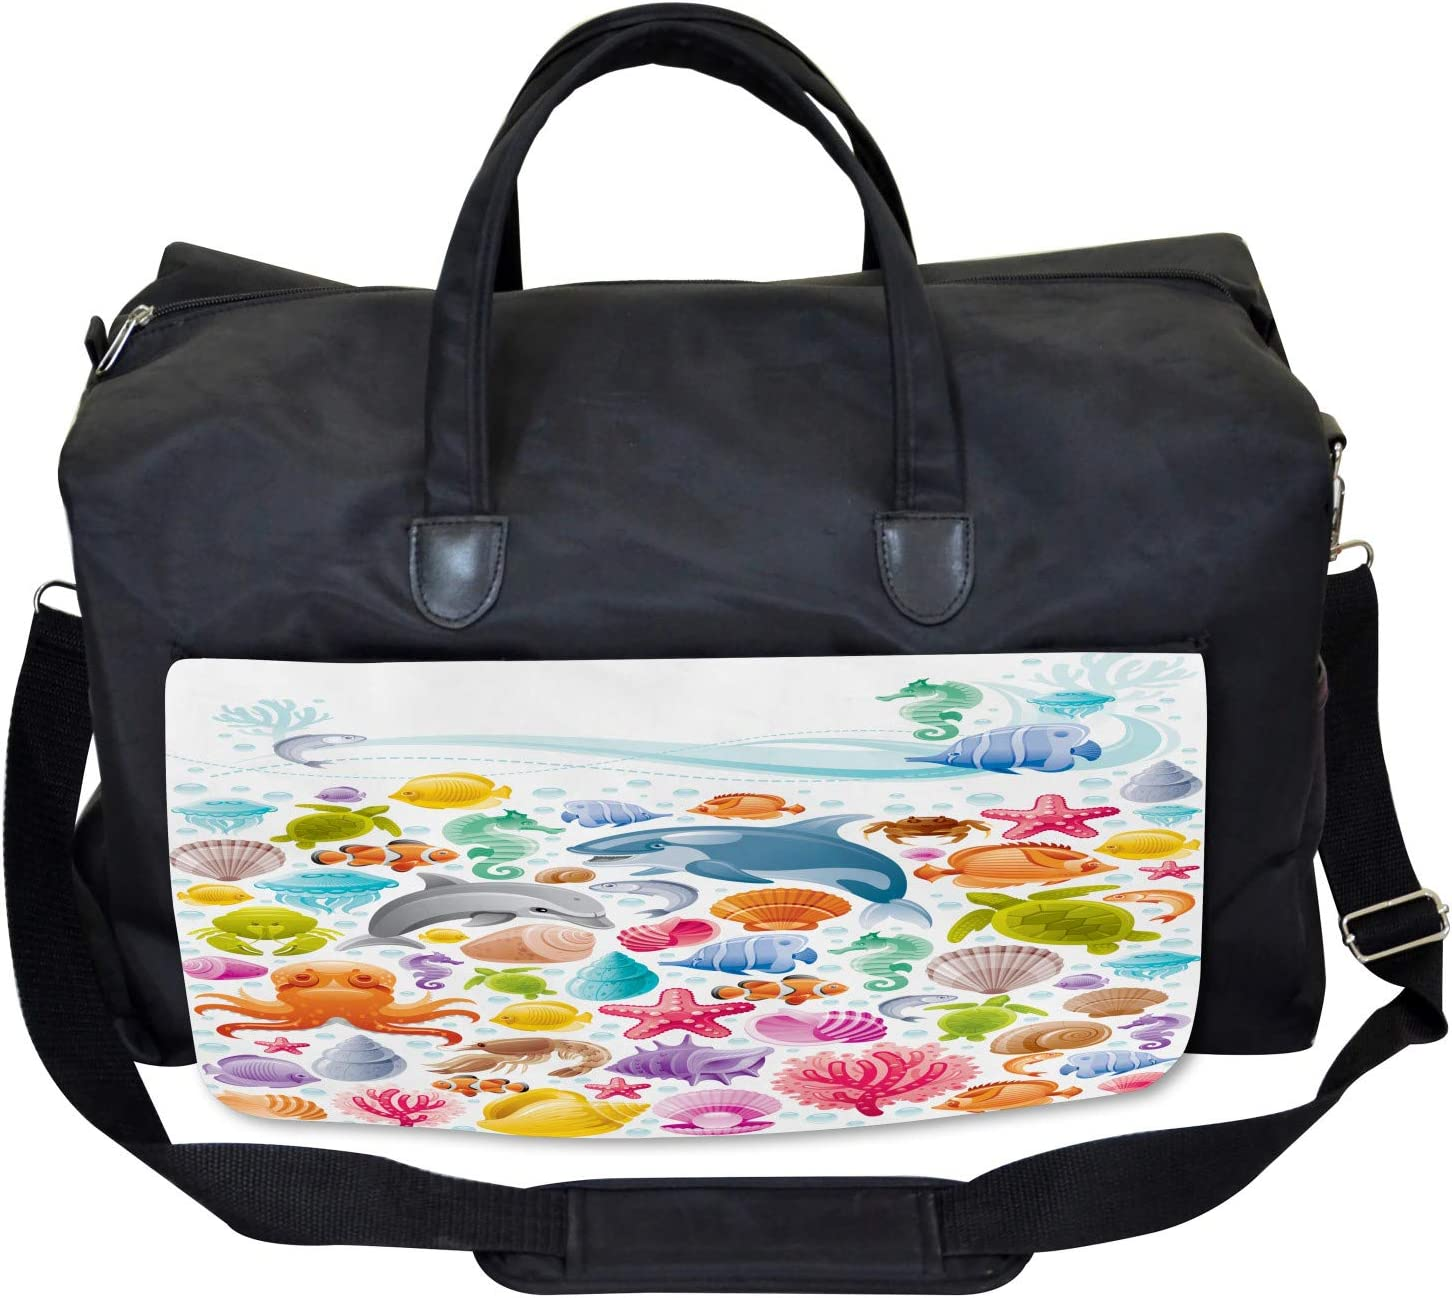 Ambesonne Gym Bag Large Weekender Carry-on Ocean Fauna Design